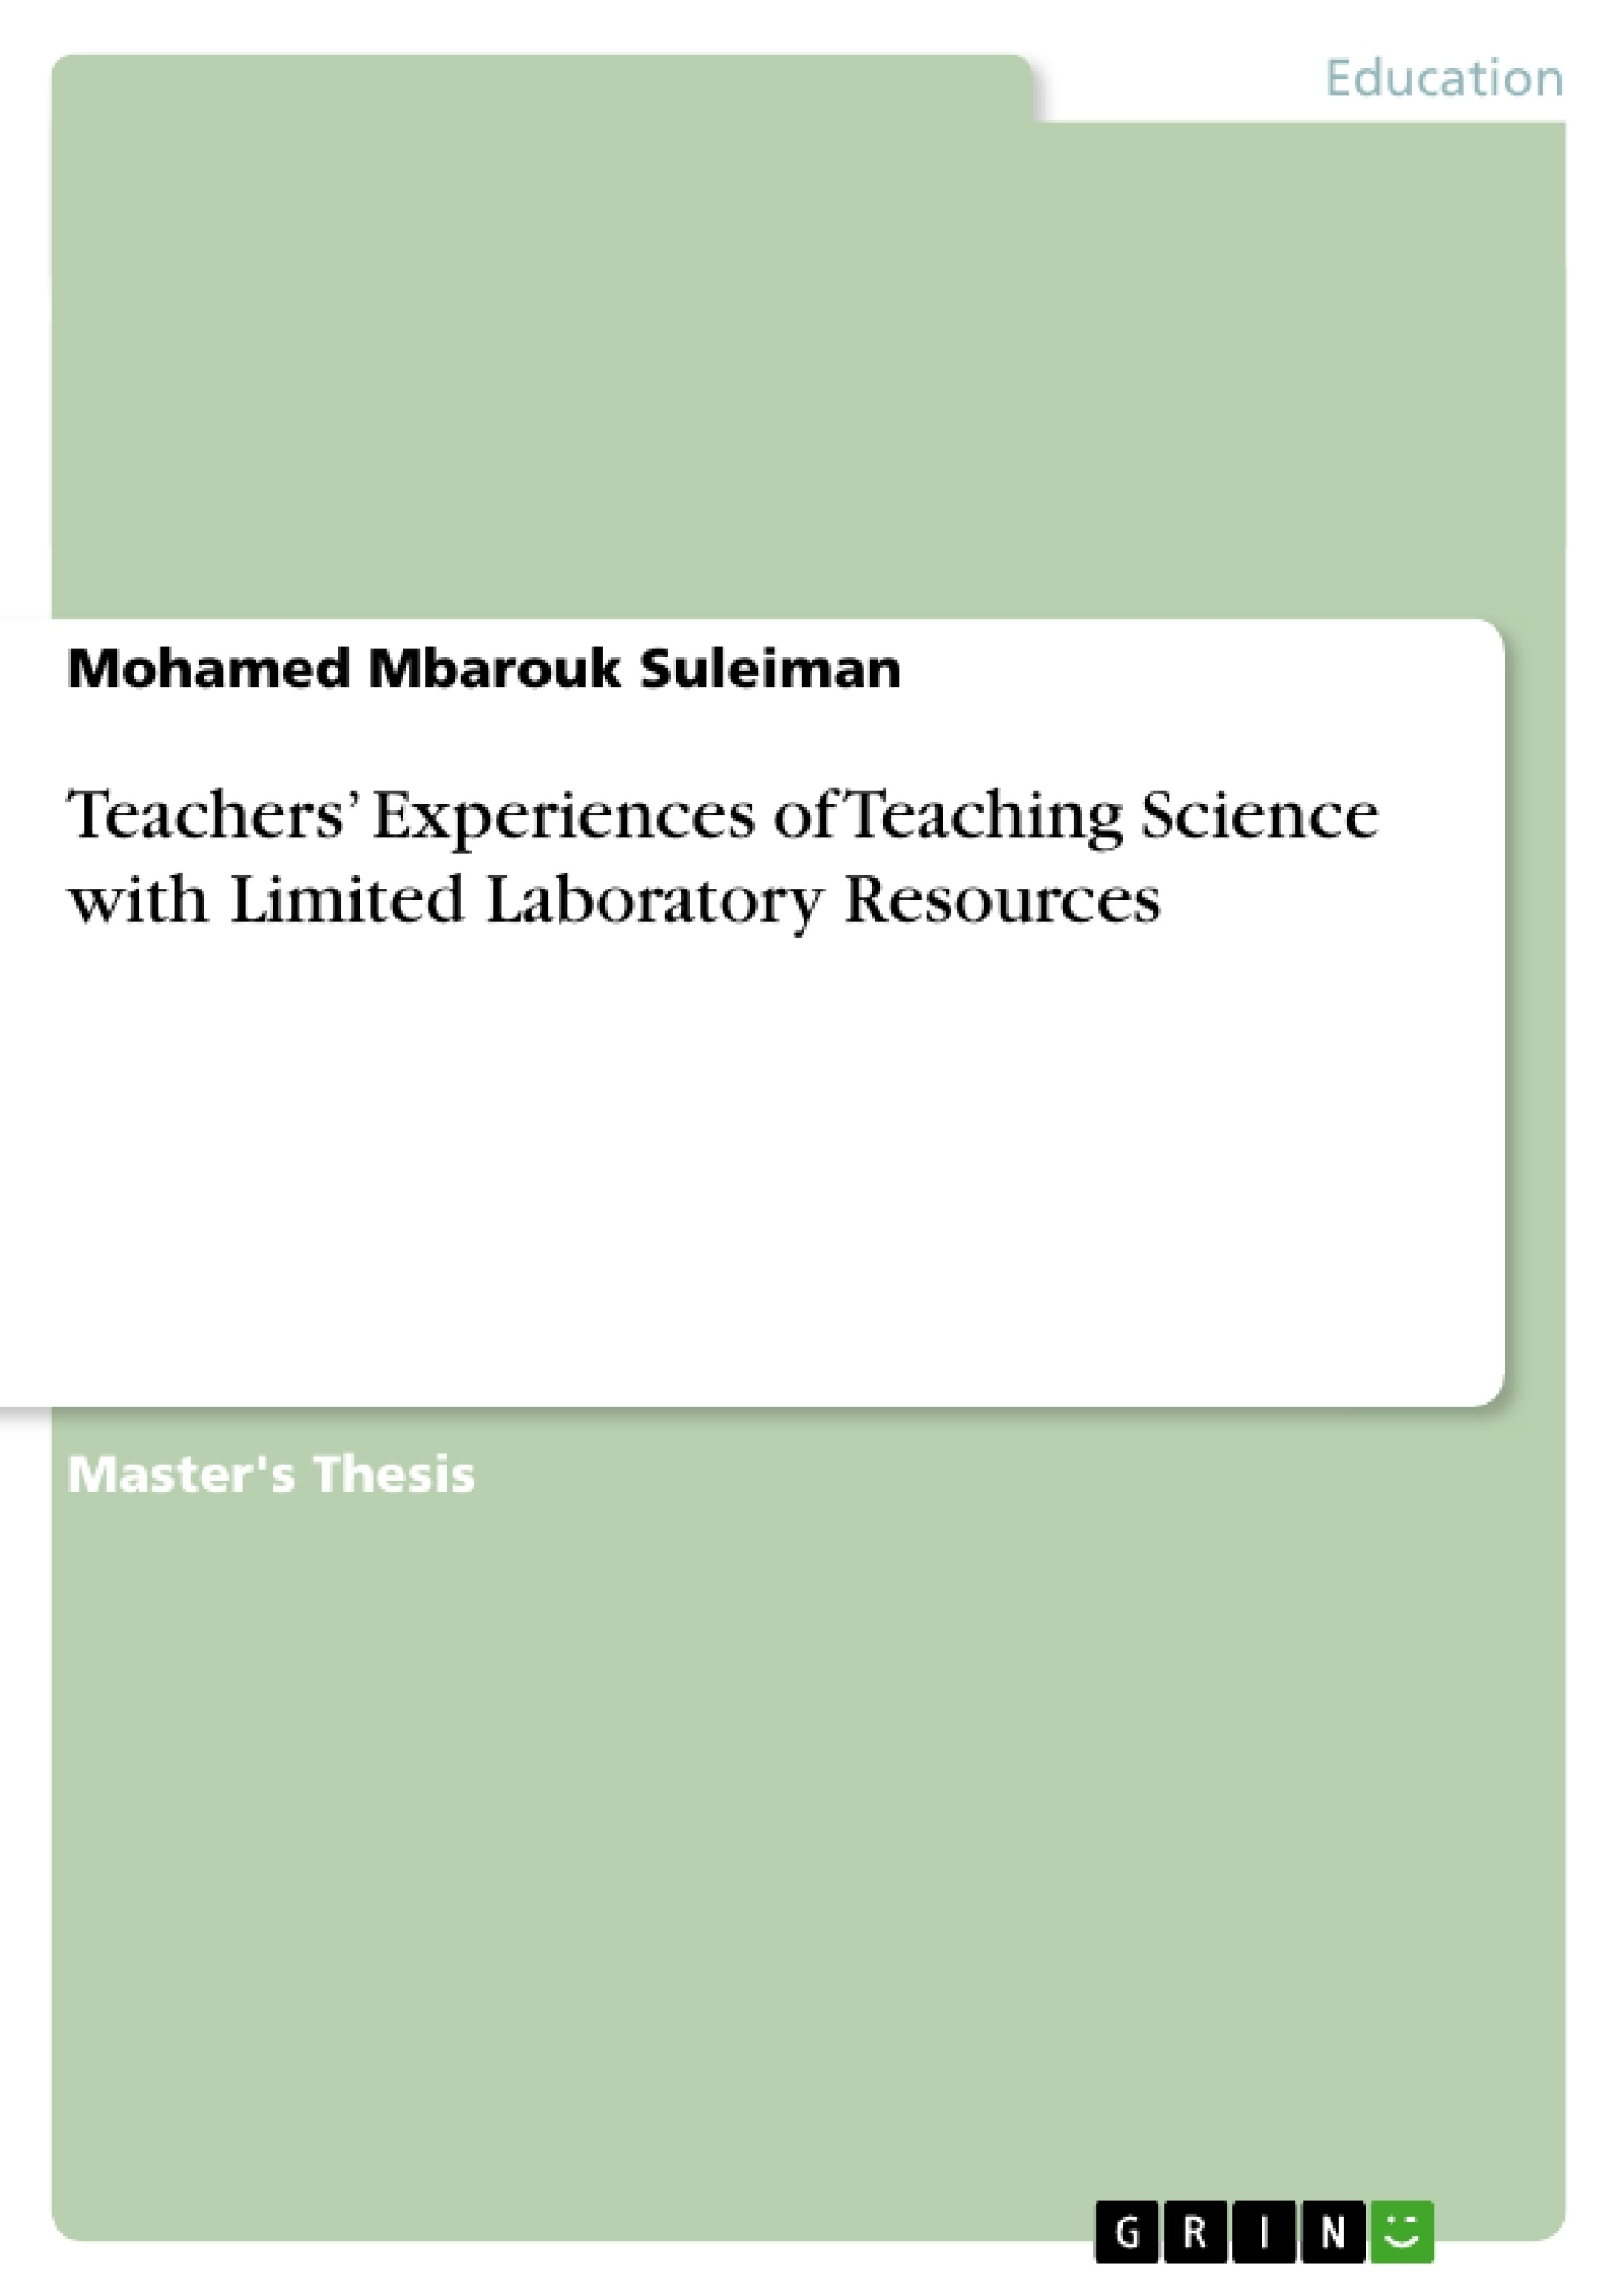 Title: Teachers' Experiences of Teaching Science with Limited Laboratory Resources